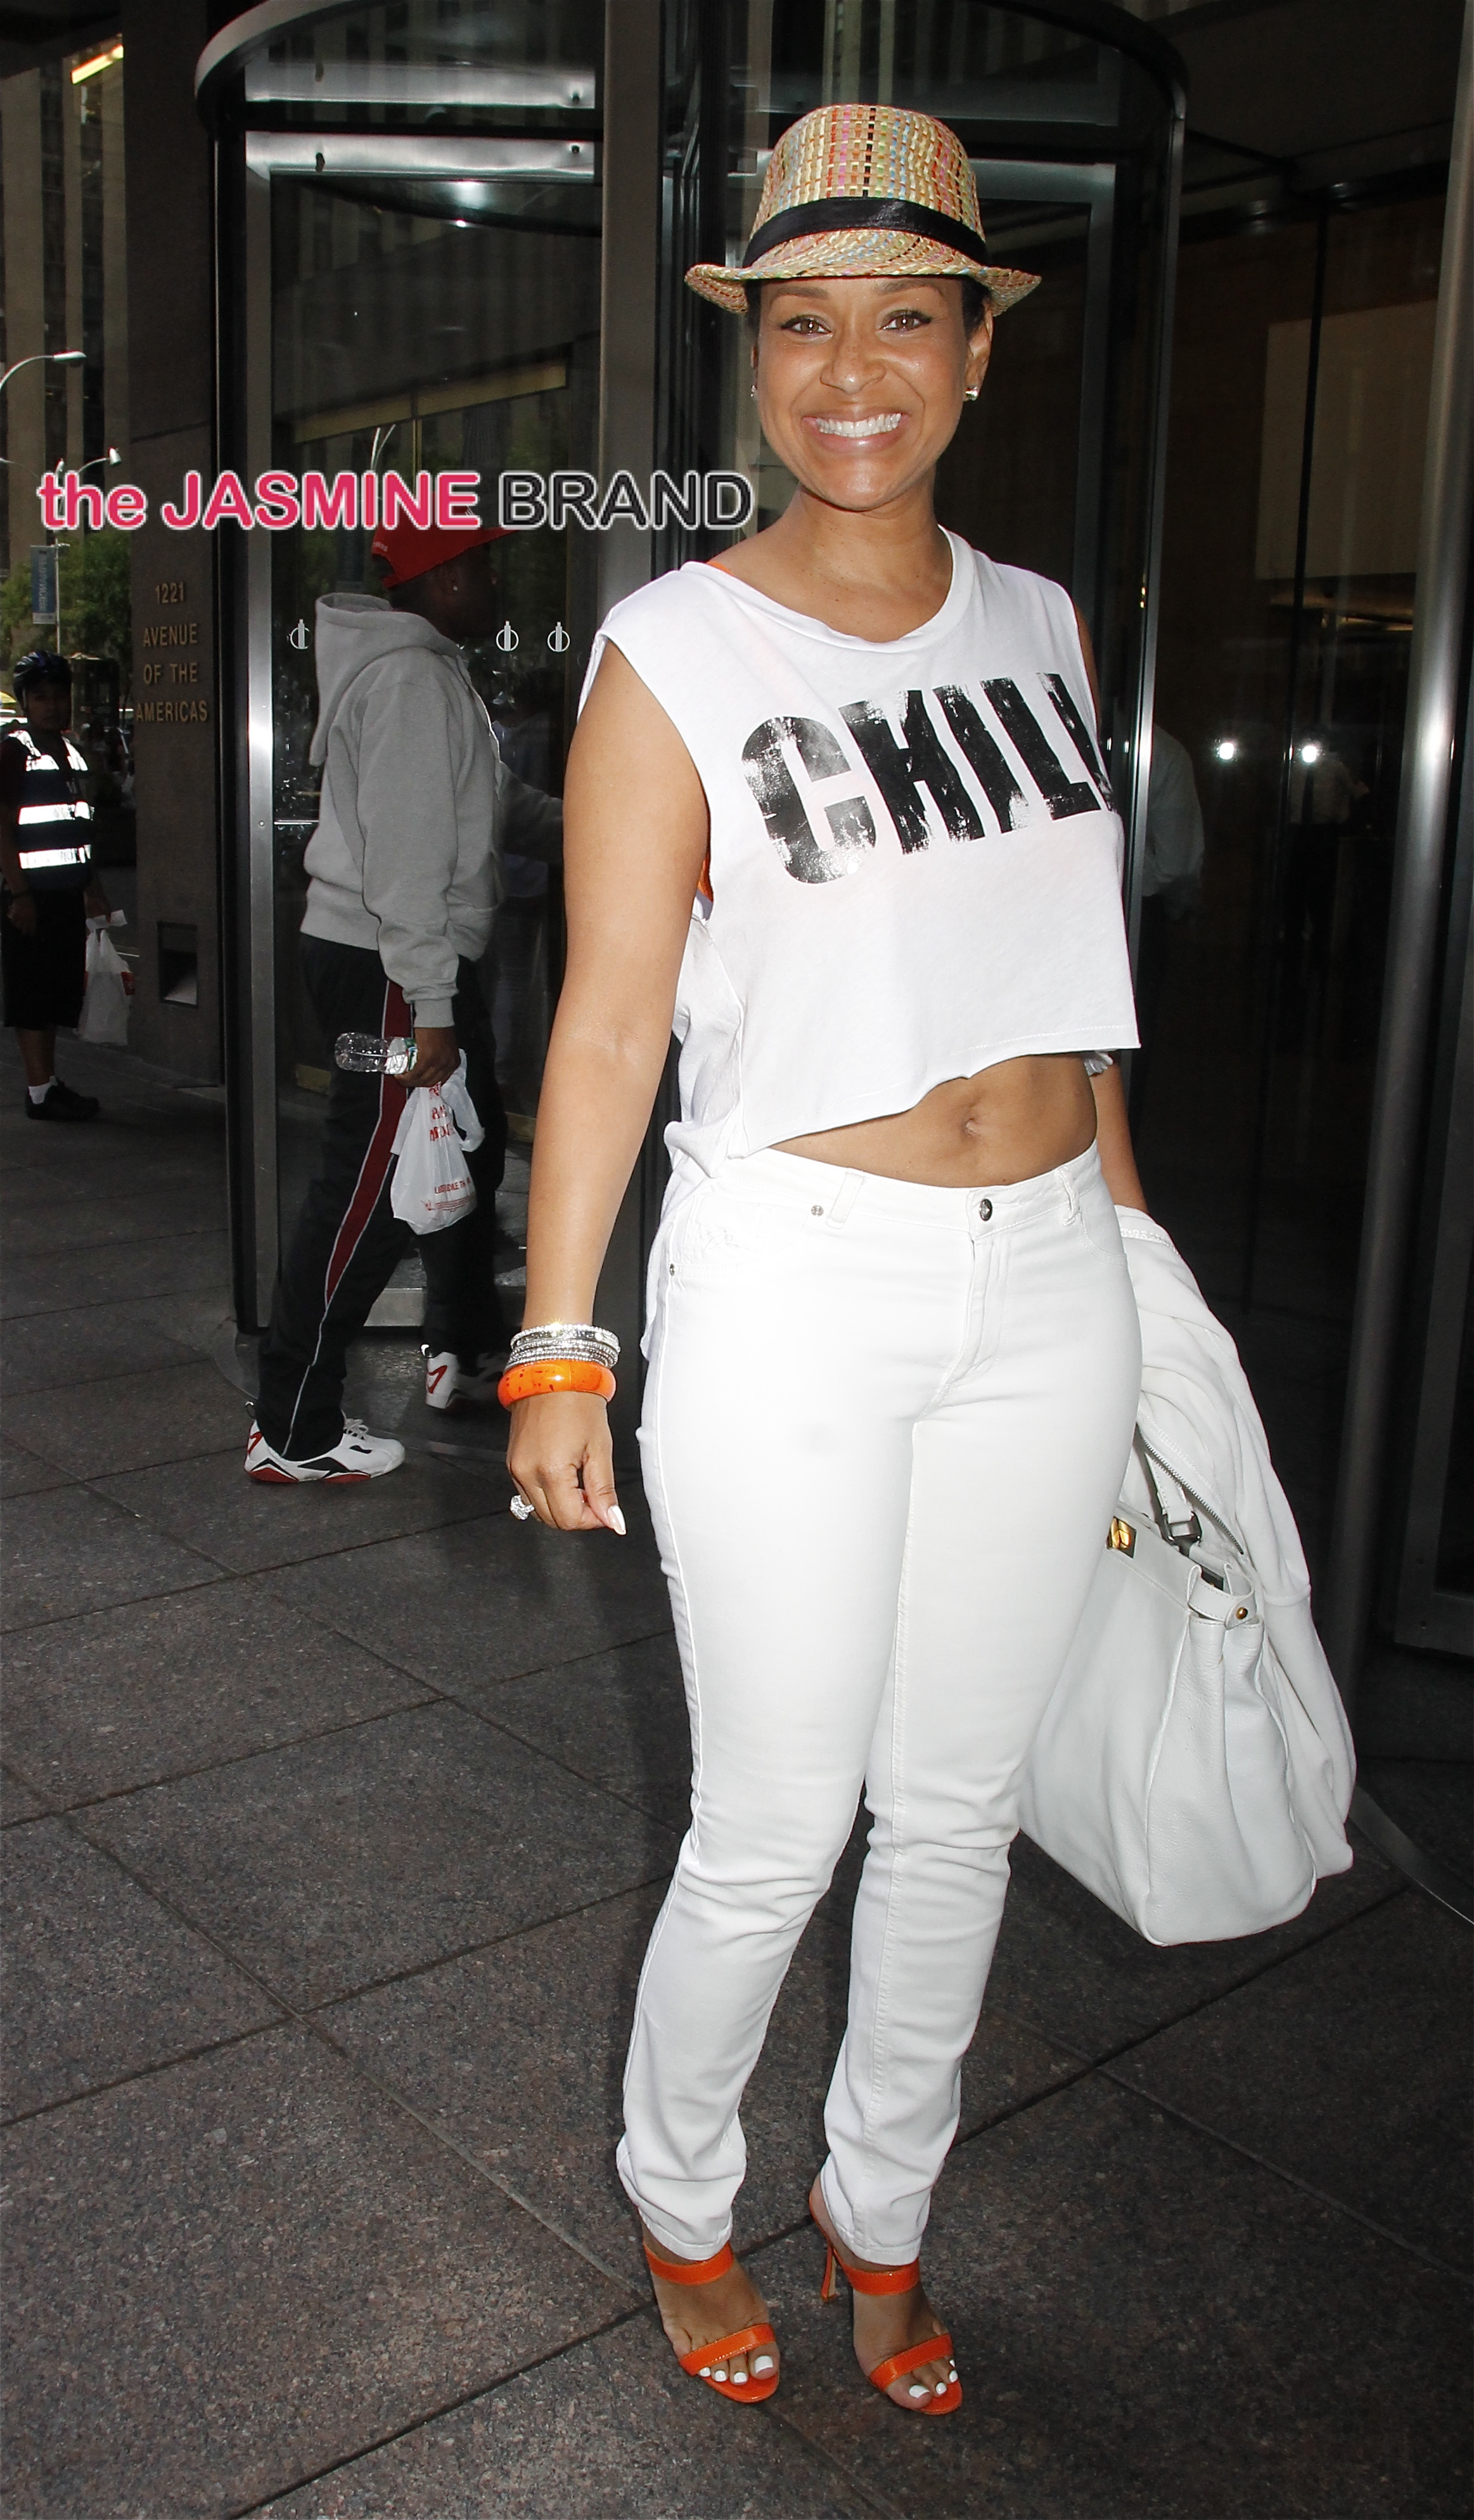 Actress LisaRaye McCoy arrives at Sirius XM studios in NYC